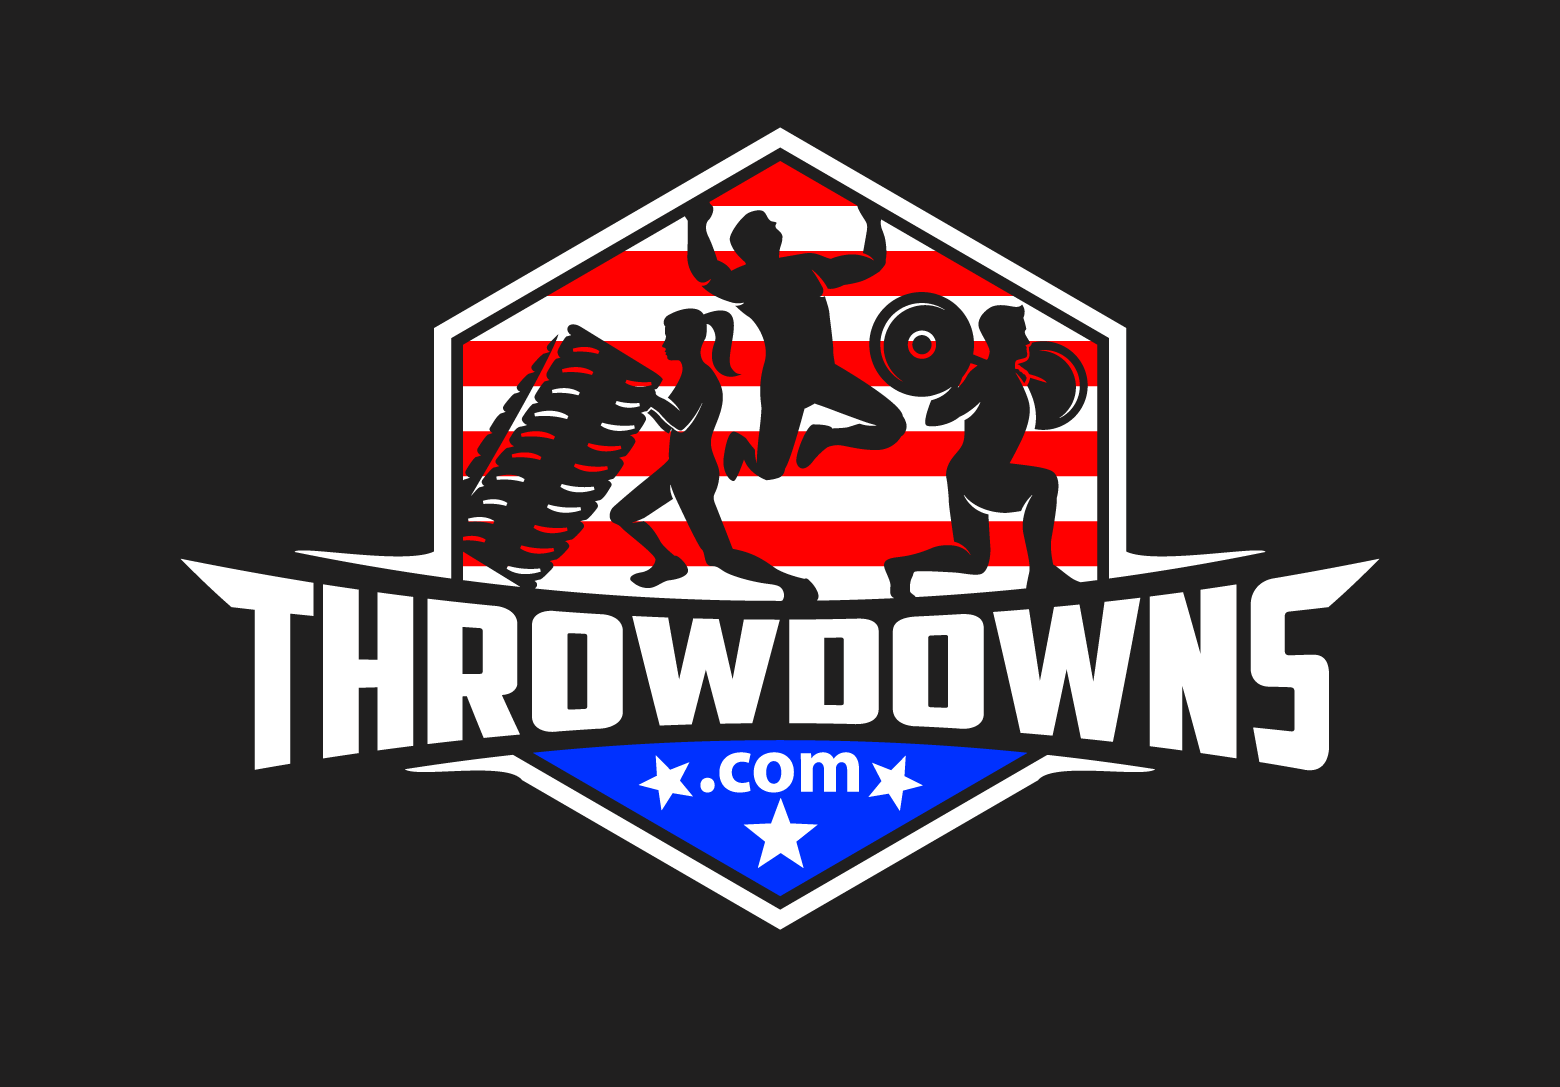 Throwdowns.com Logo